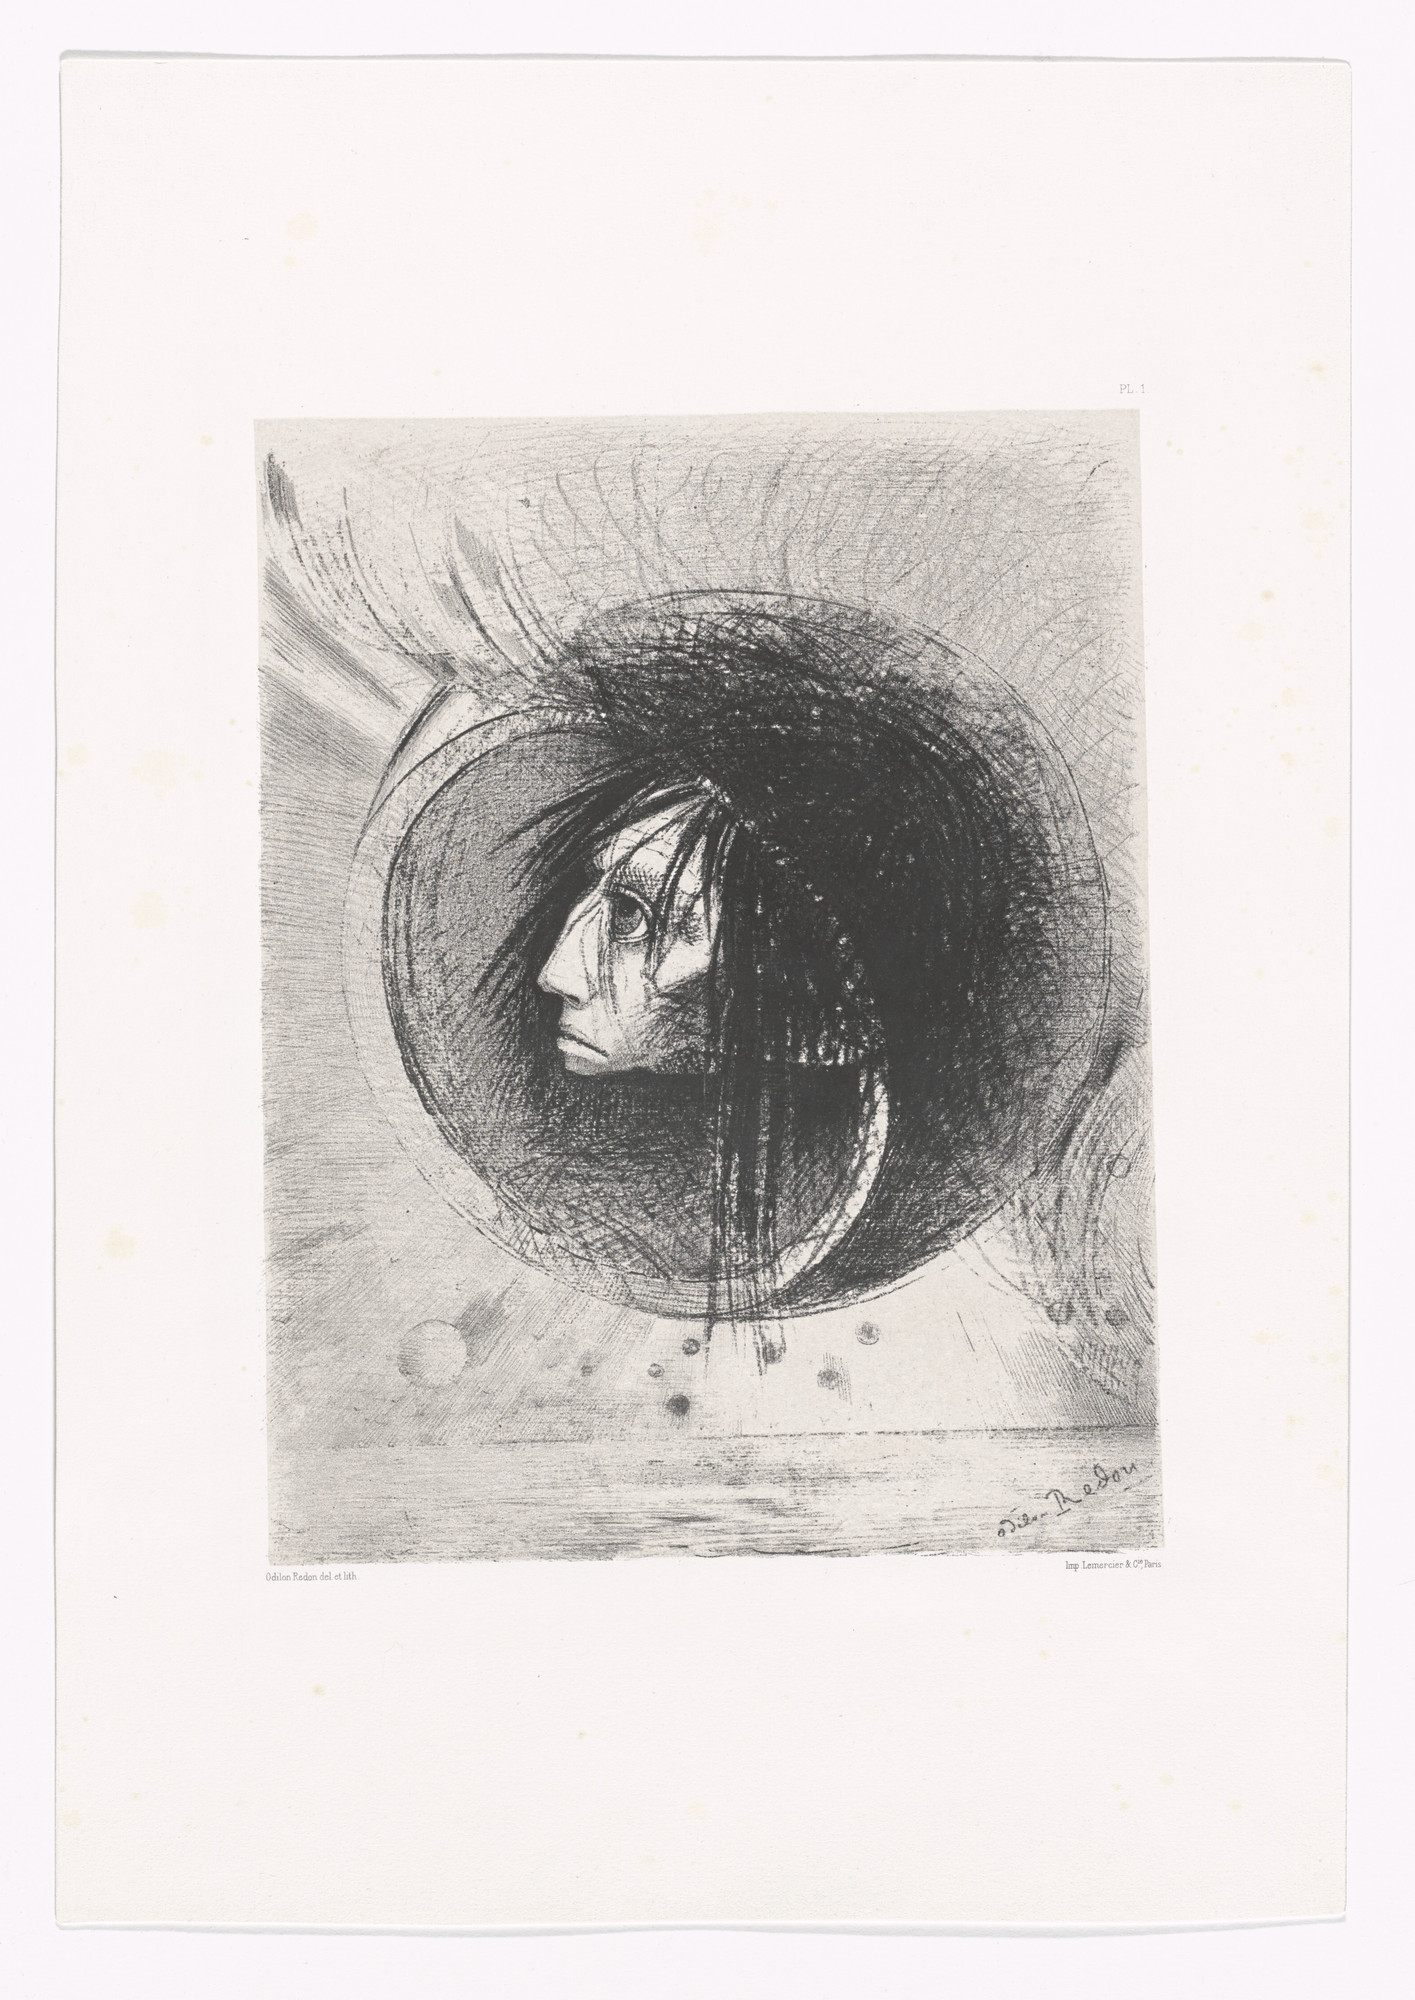 Odilon Redon. Blossoming (Éclosion) from In the Dream (Dans le rêve). 1879